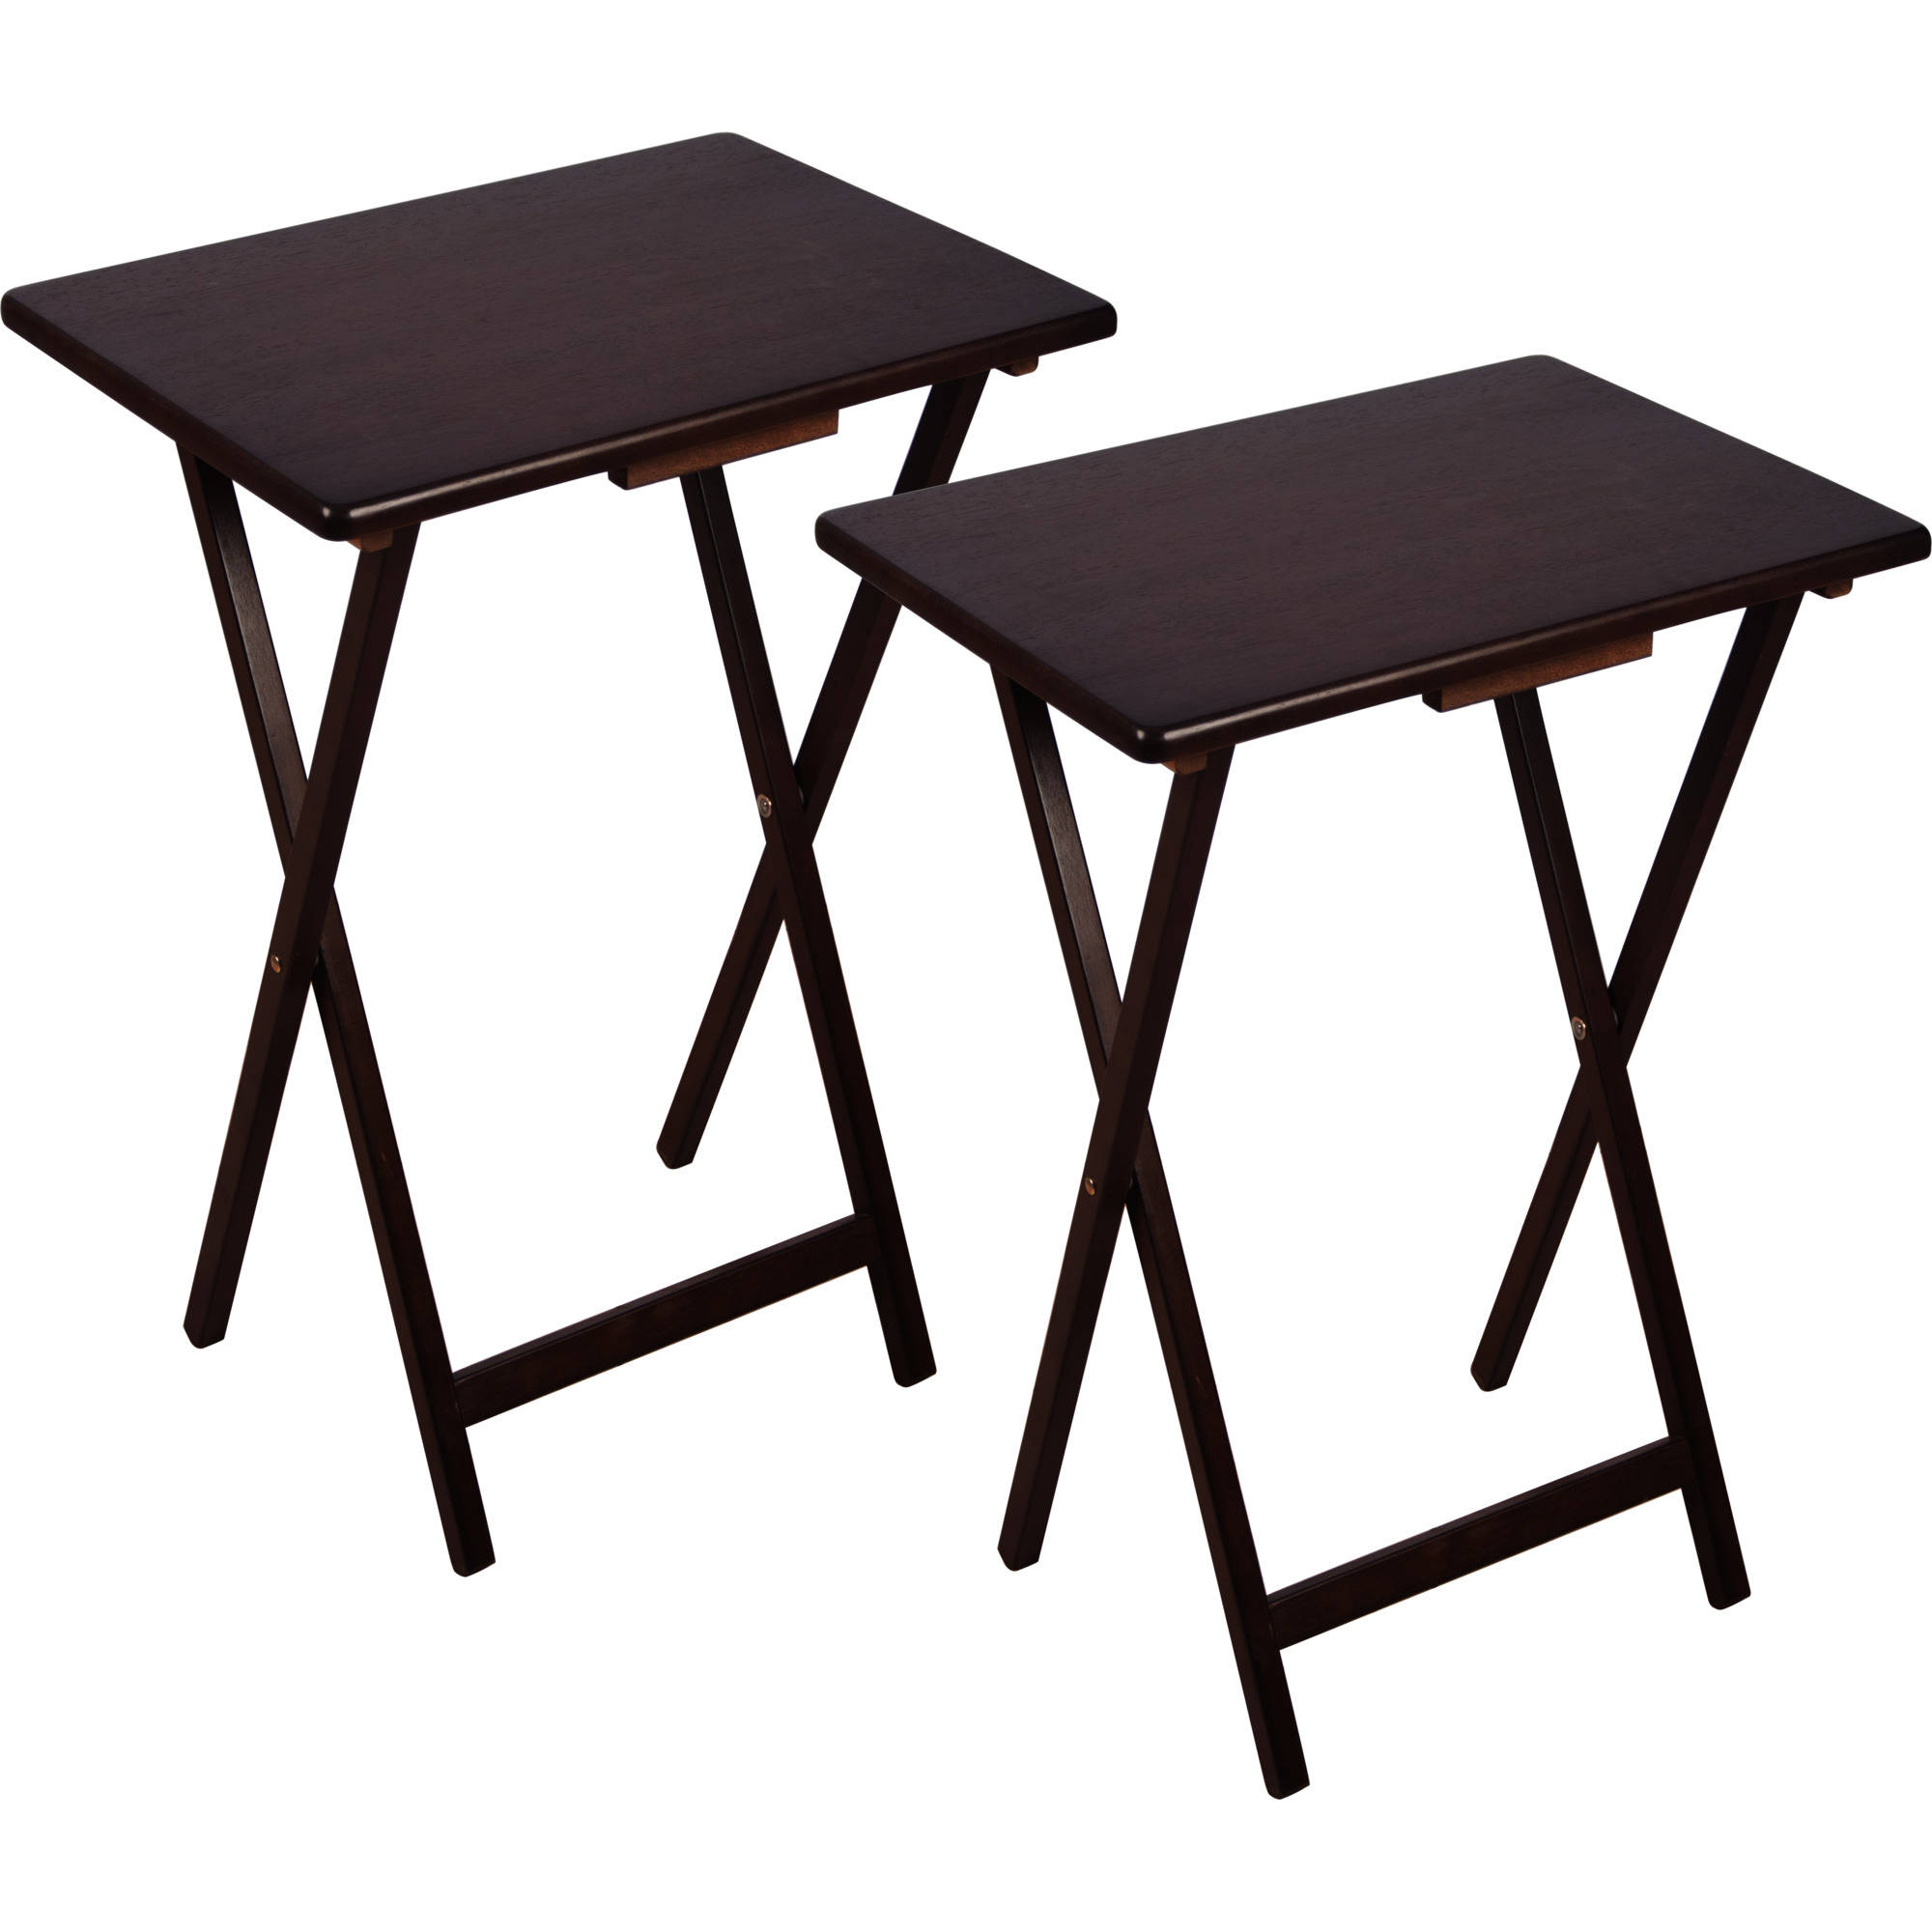 2 piece folding wood tv laptop tray table stand set for Table retractable